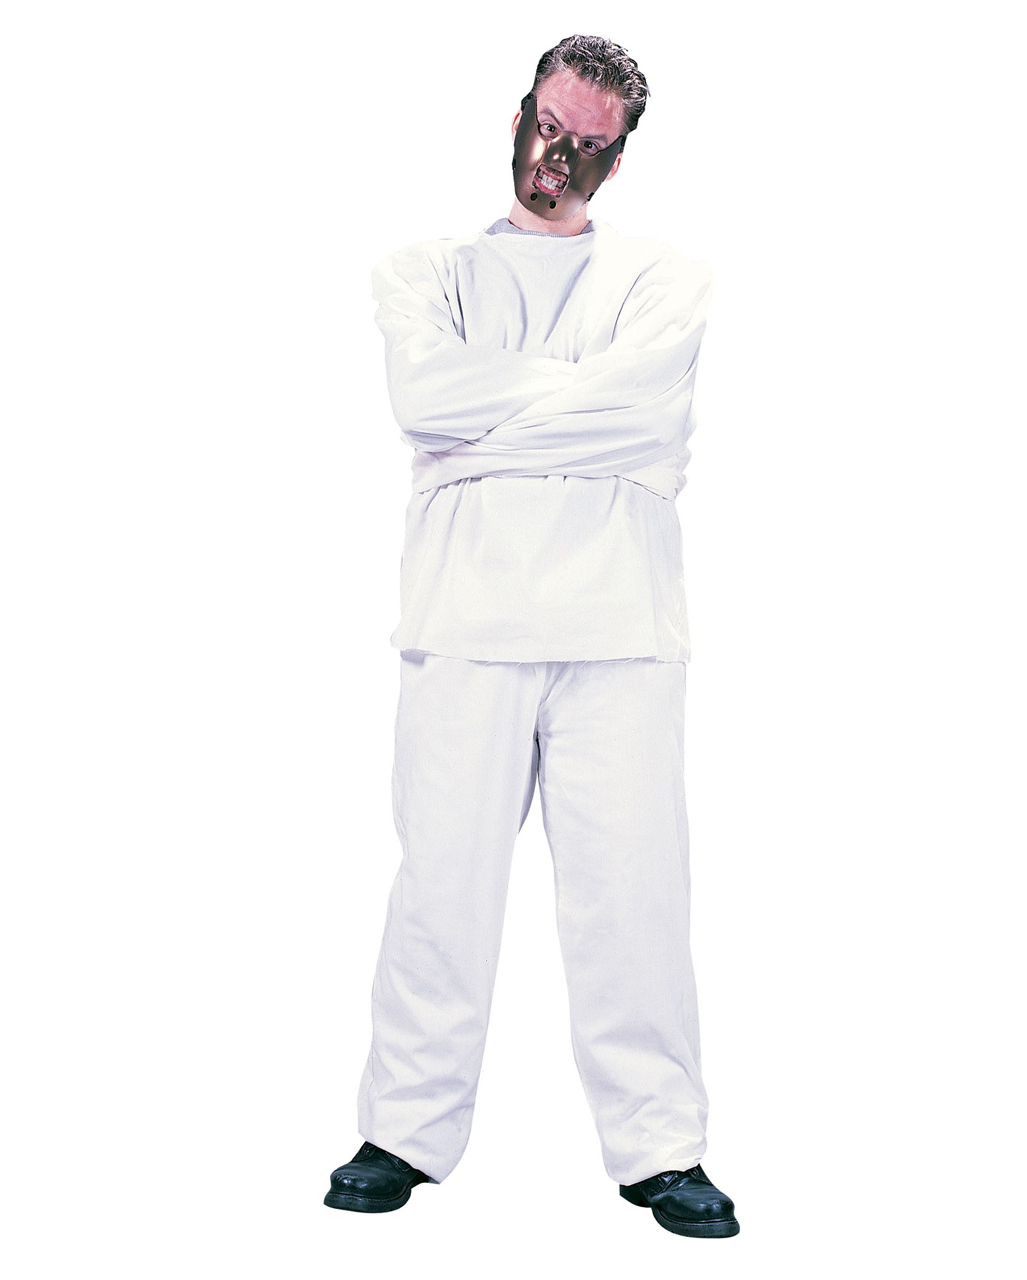 HALLOWEEN FANCY DRESS HANNIBAL LECTER STYLE COSTUME SCARY MASK STRAIGHT JACKET